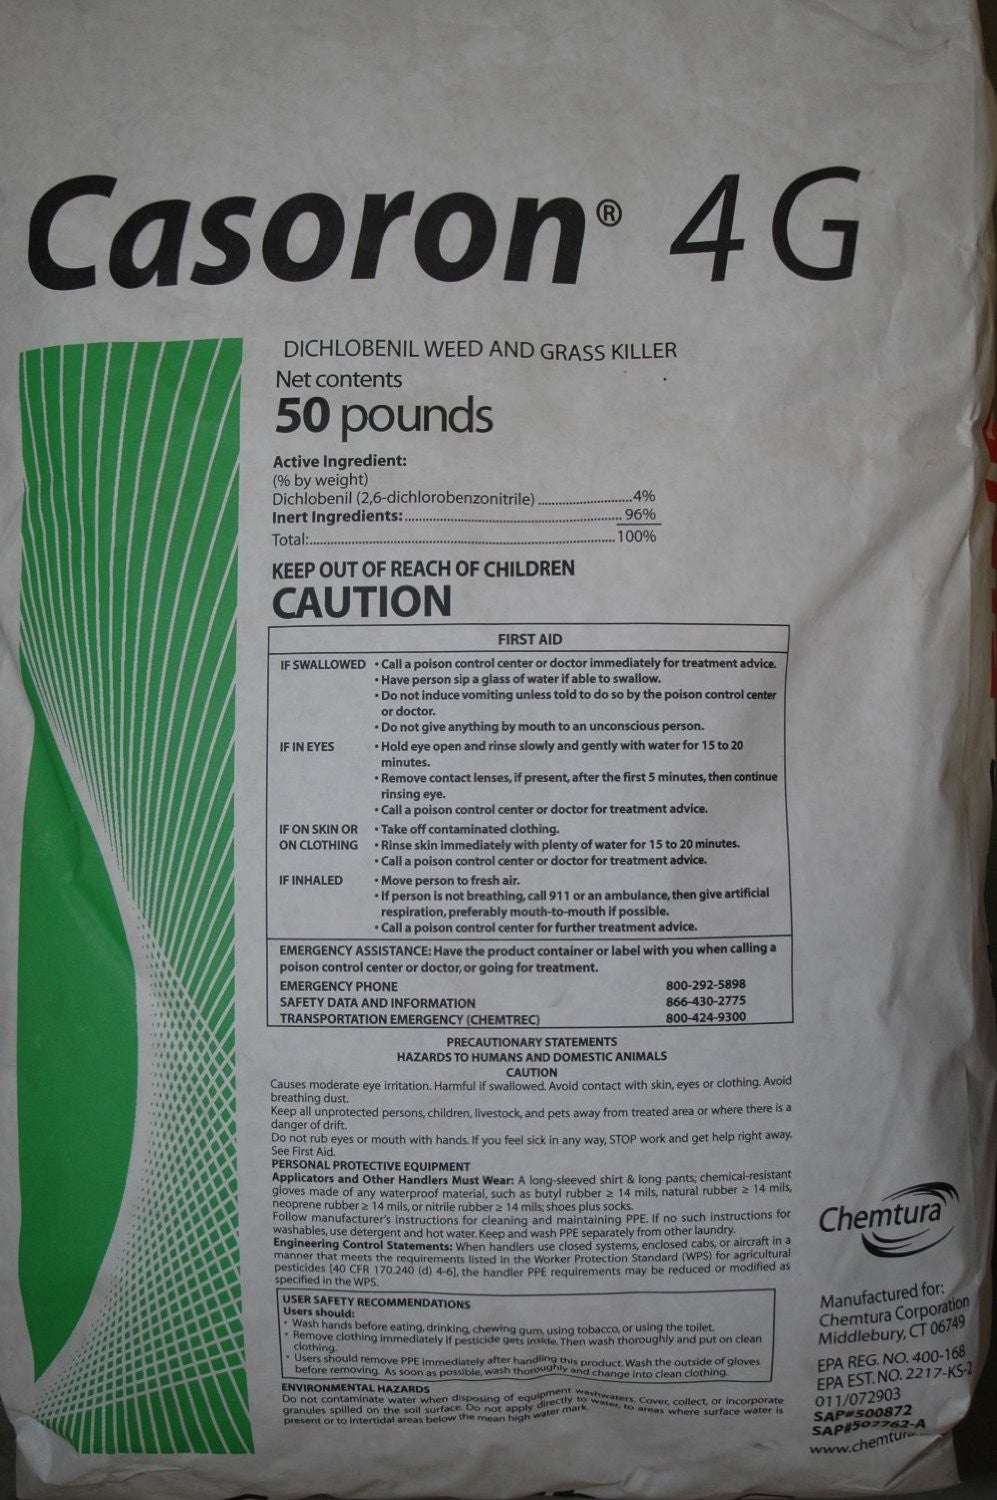 Casoron 4G Mulch Bed Weed Inhibitor, 50 Pounds